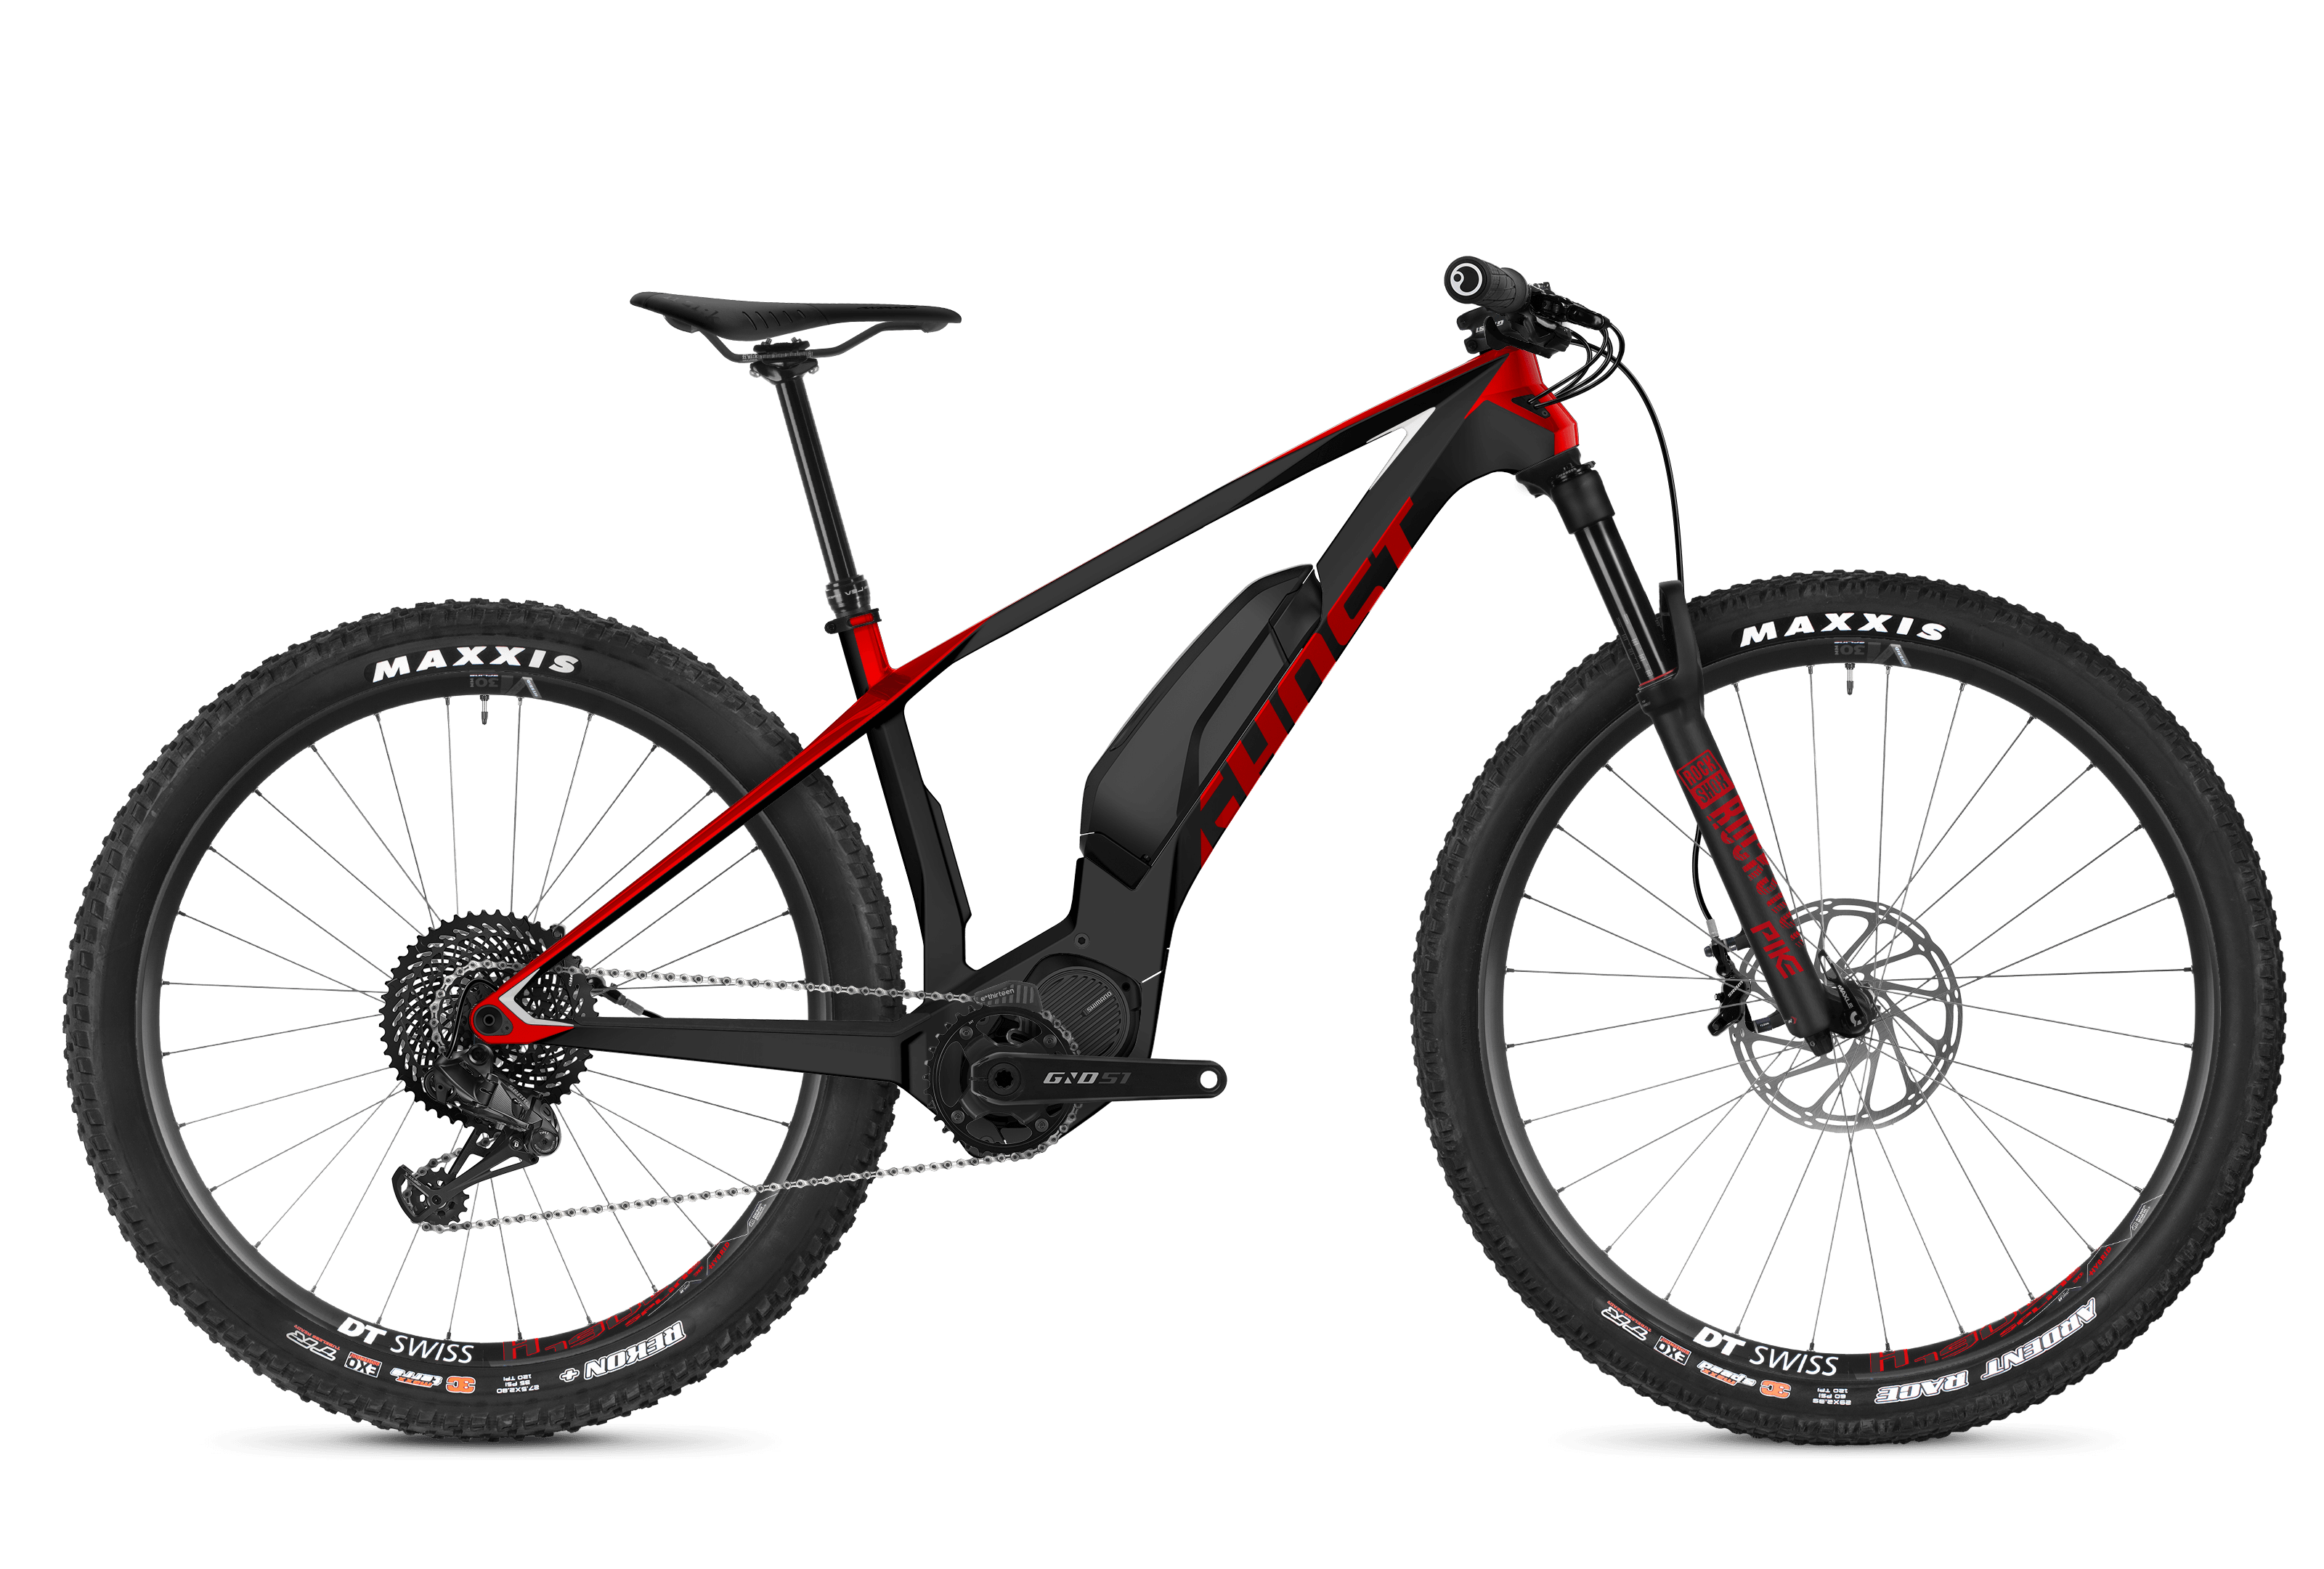 Hybride Lector S6.7+ LC Mountainbike Fahrrad Hardtail GHOST